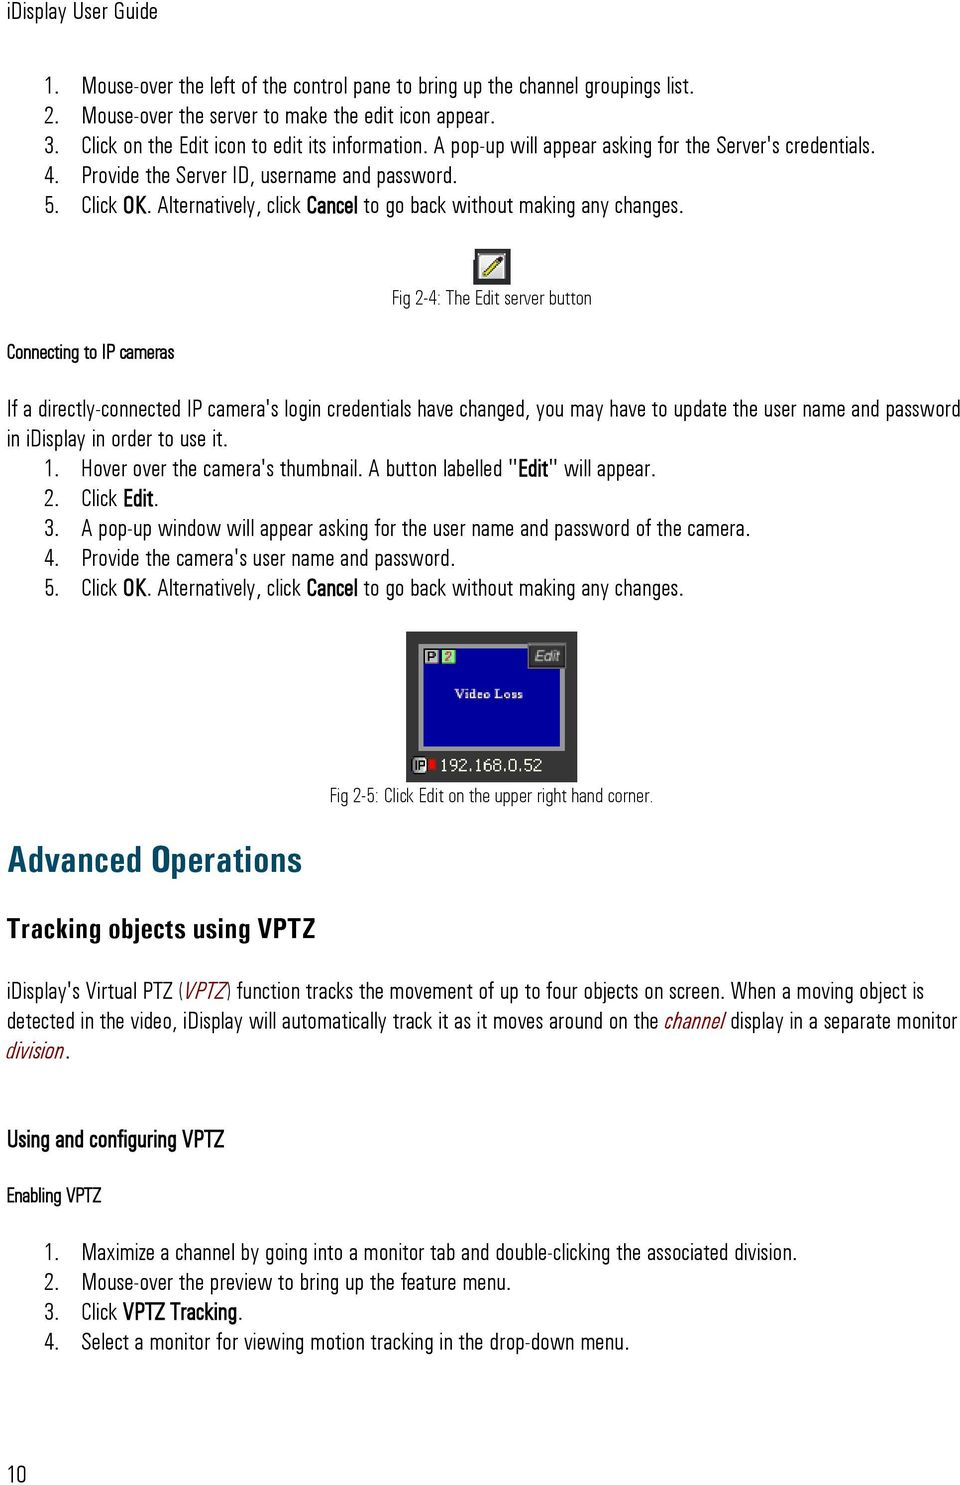 idisplay v 2 0 User Guide - PDF